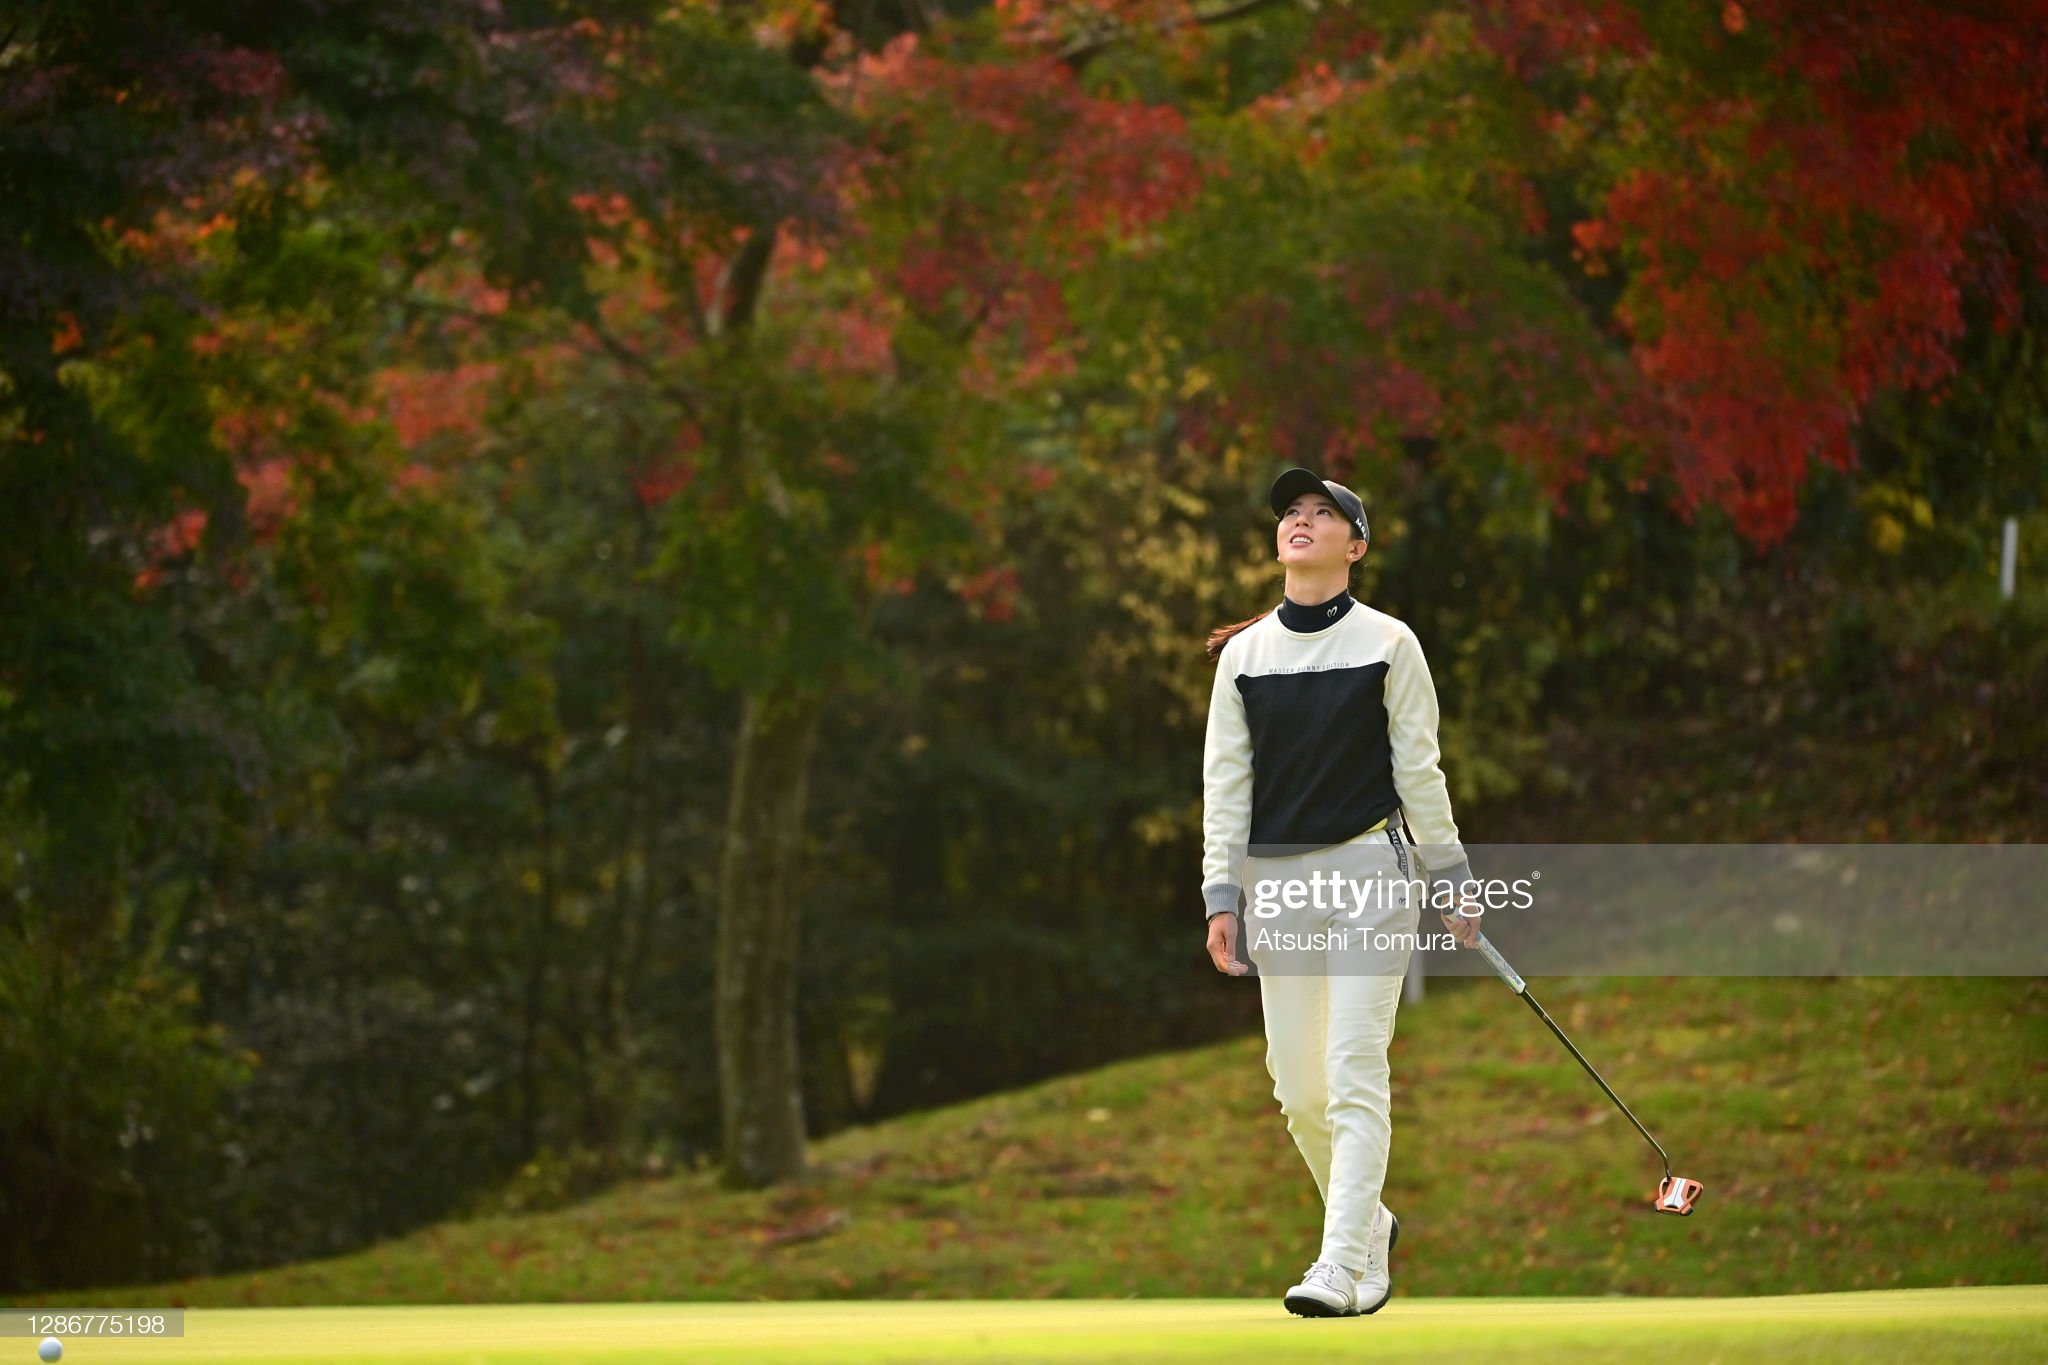 https://media.gettyimages.com/photos/chaeyoung-yoon-of-south-korea-reacts-after-a-putt-on-the-2nd-green-picture-id1286775198?s=2048x2048